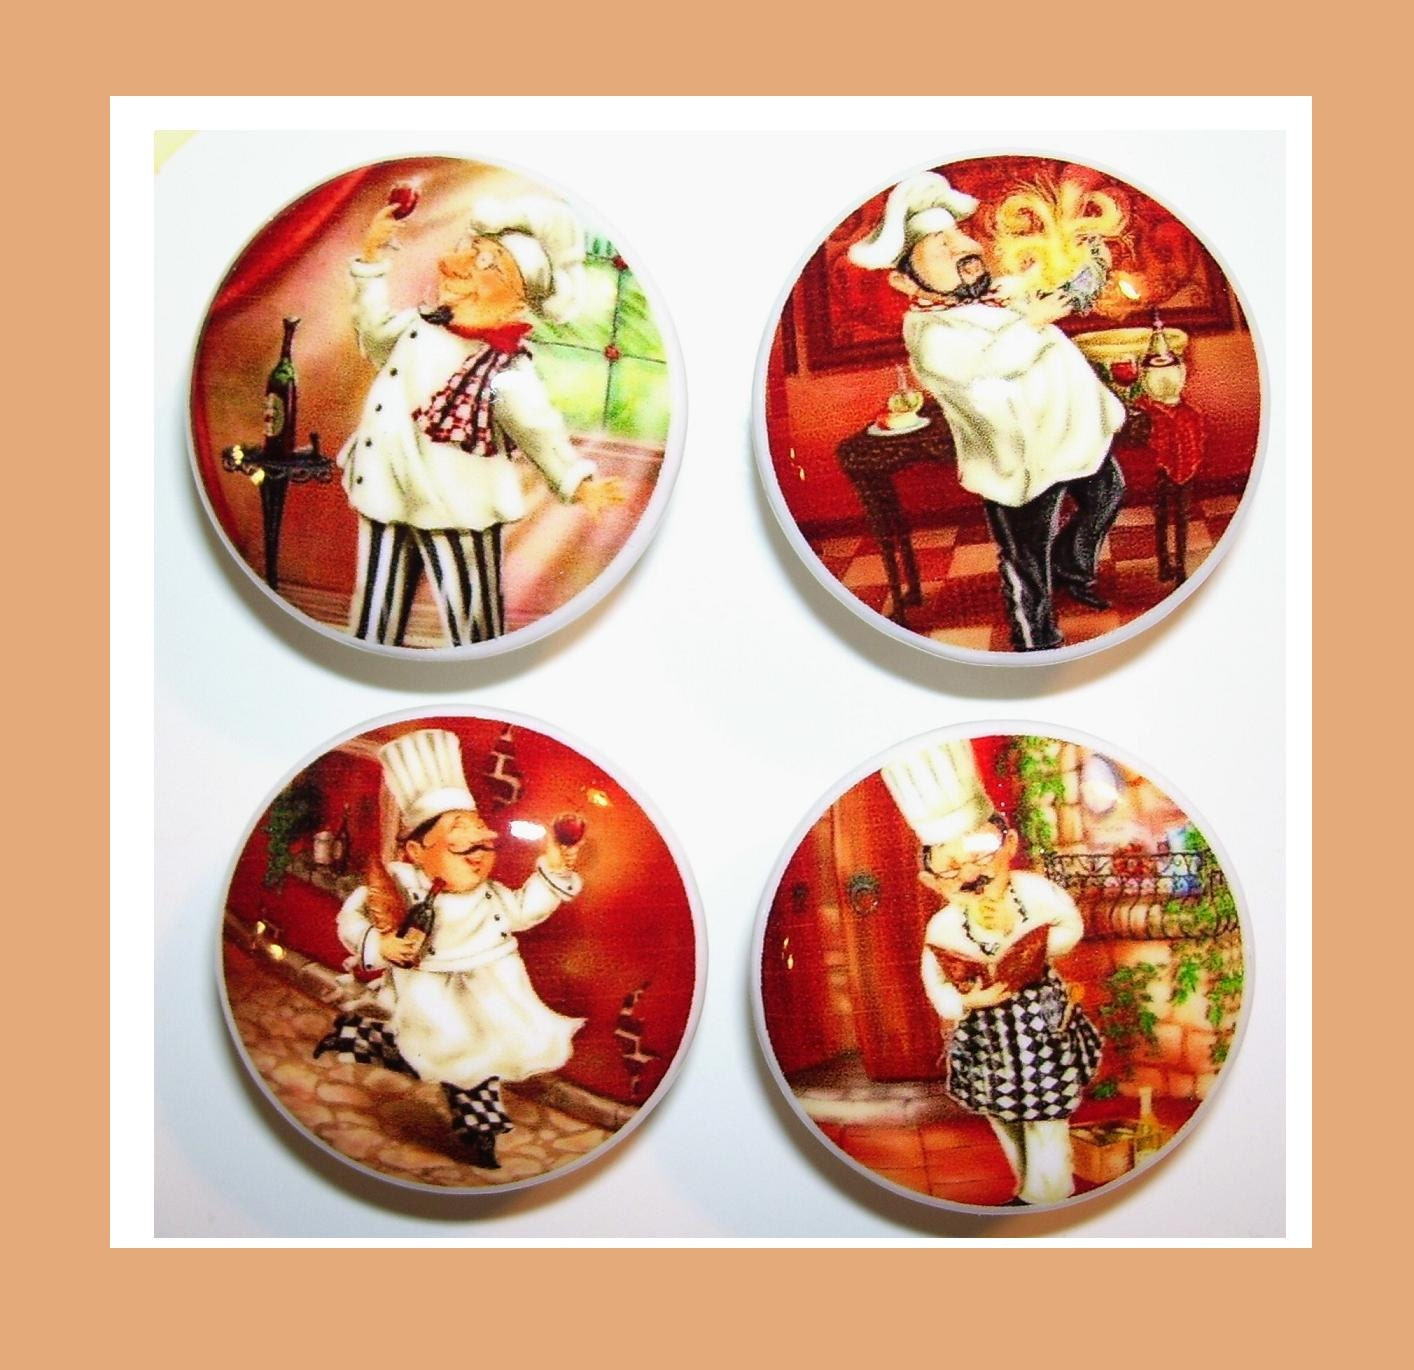 Chef Decor For Kitchen: 4 FAT CHEF Dresser Drawer Knobs